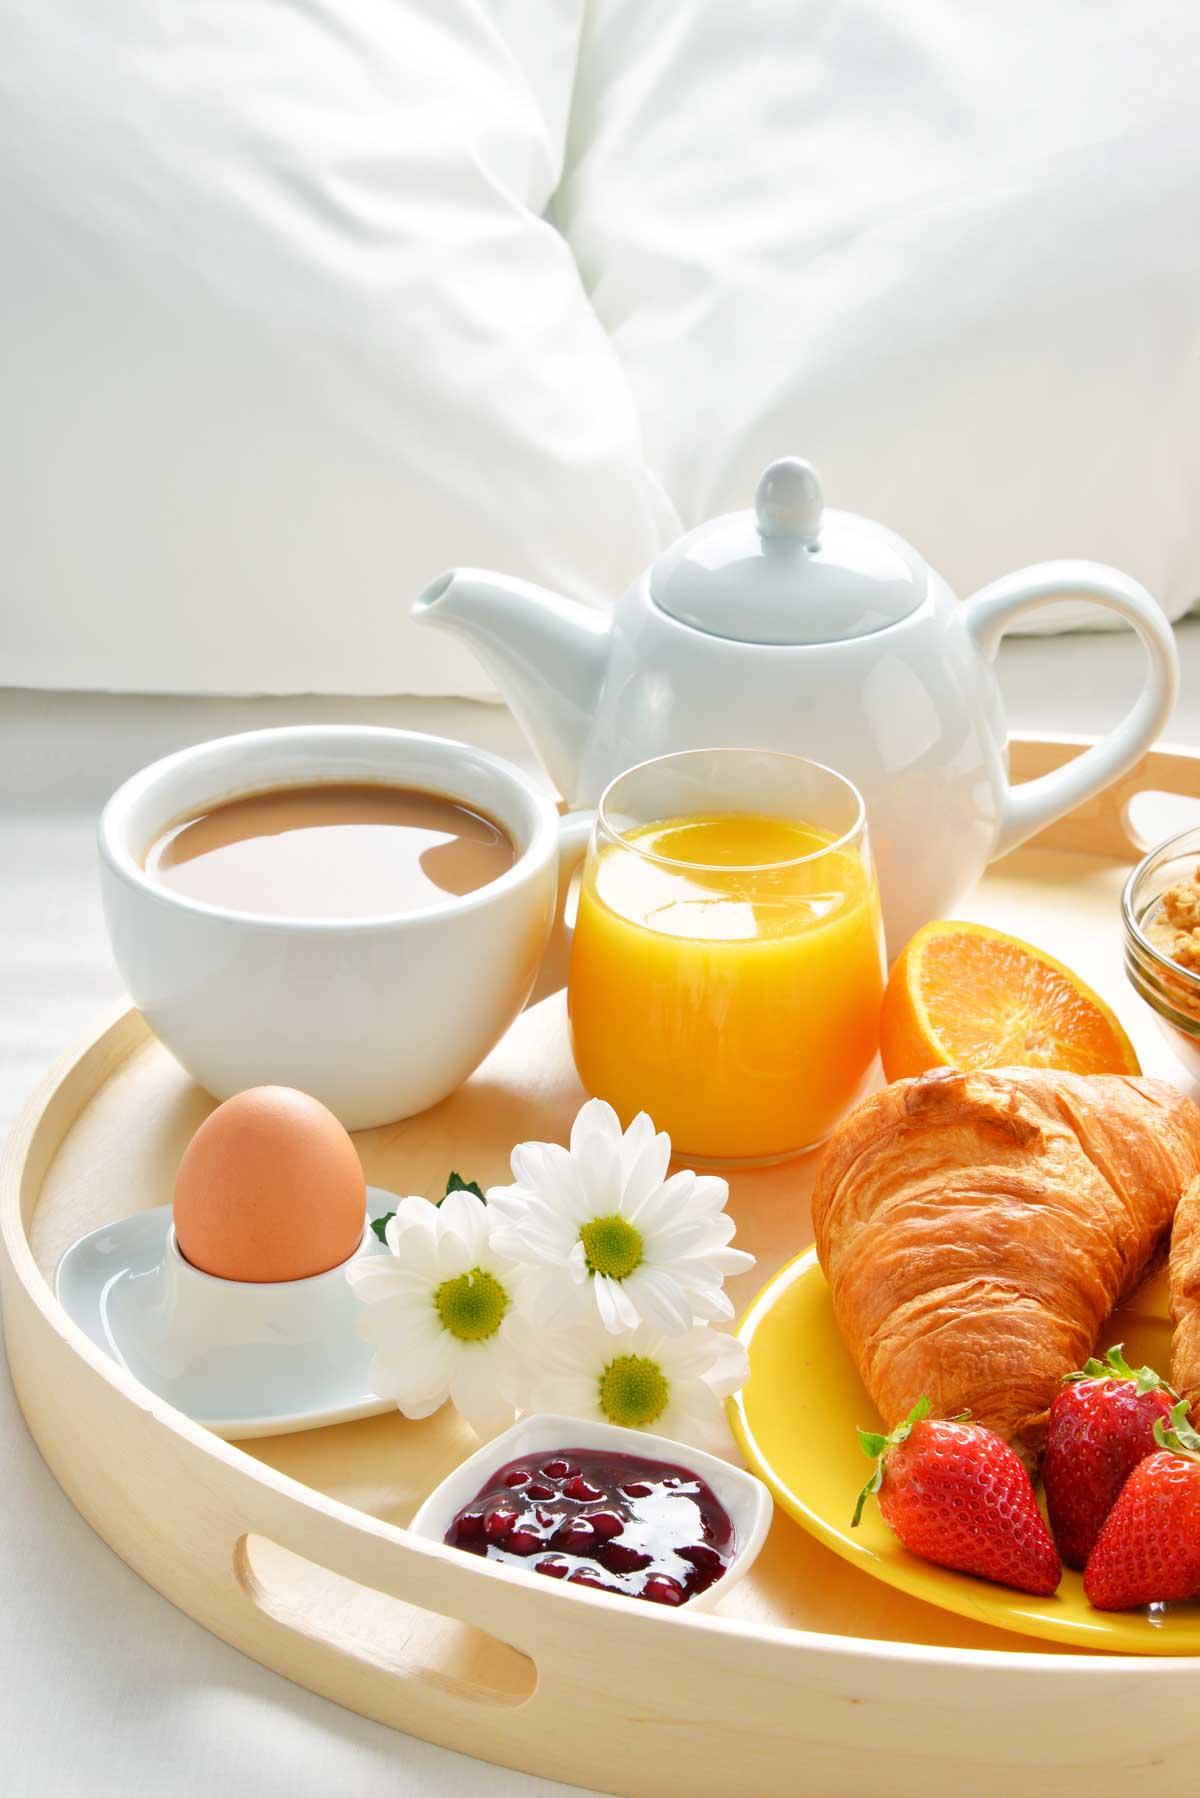 A breakfast tray sits on a bed with white pillows. There's a tea pot, coffee, orange juice, and a croissant with fresh fruit.